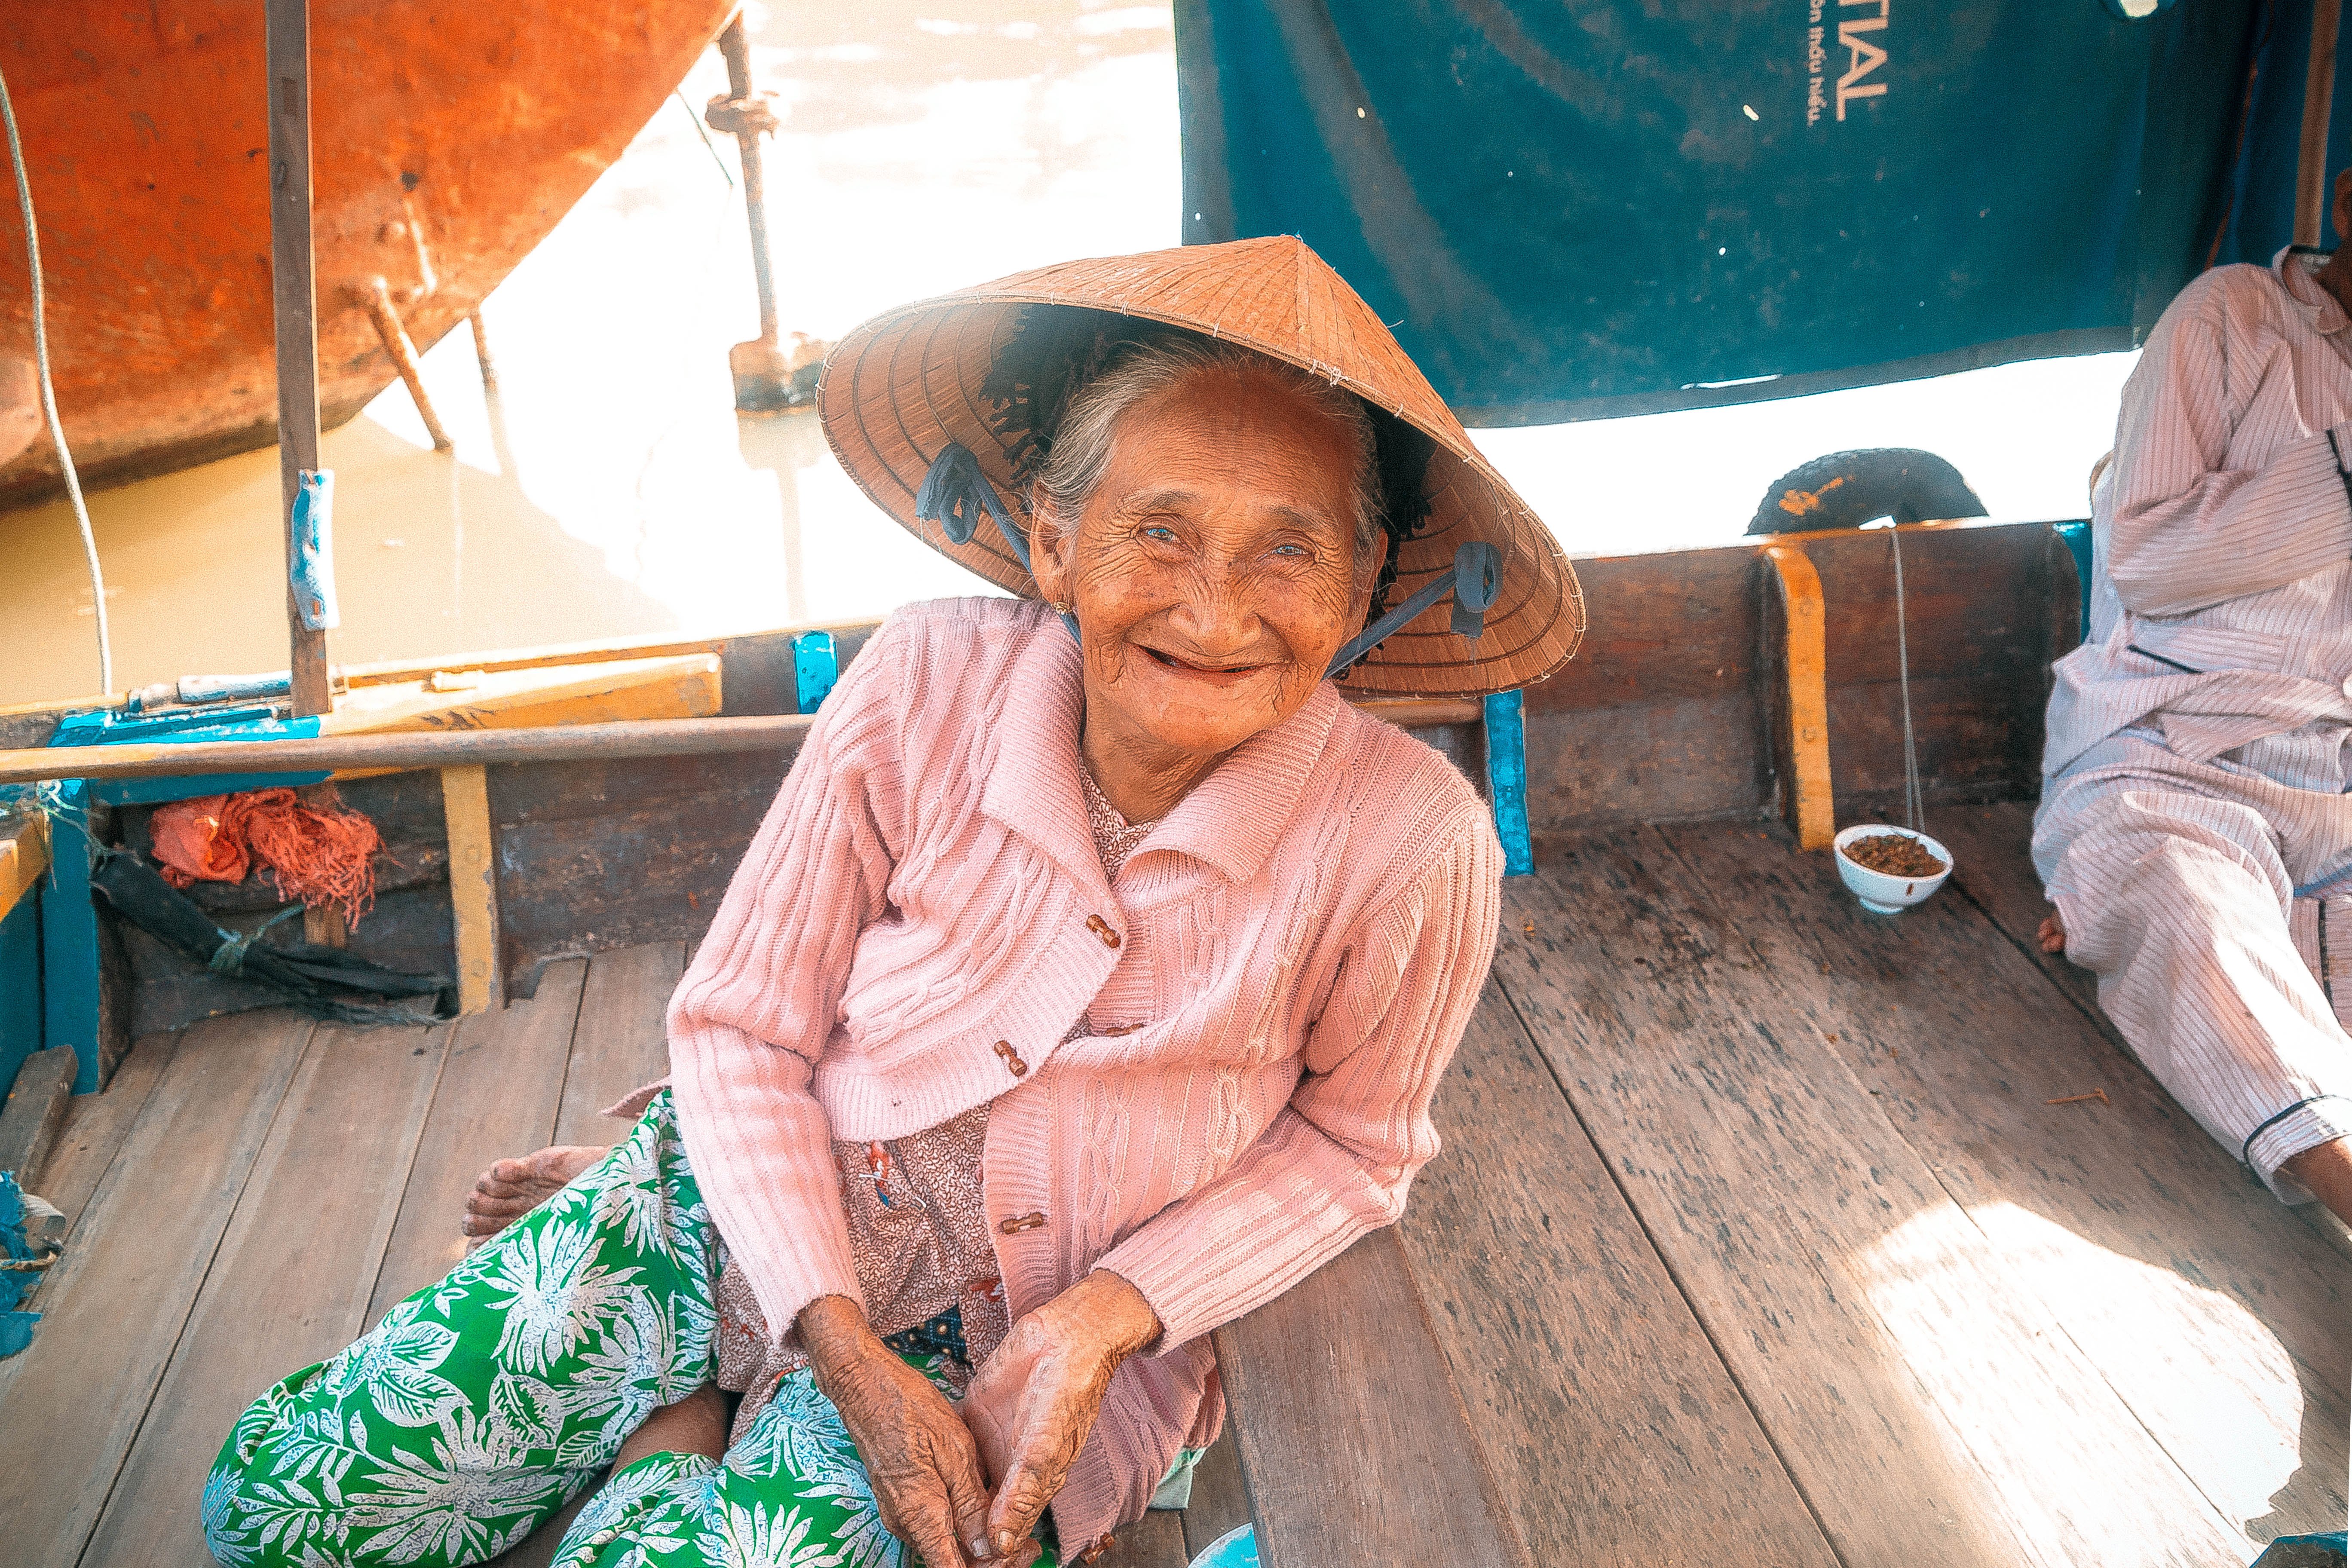 local vietnamese lady smiling in one of the boats next to the river in hoi an colourful vietnam